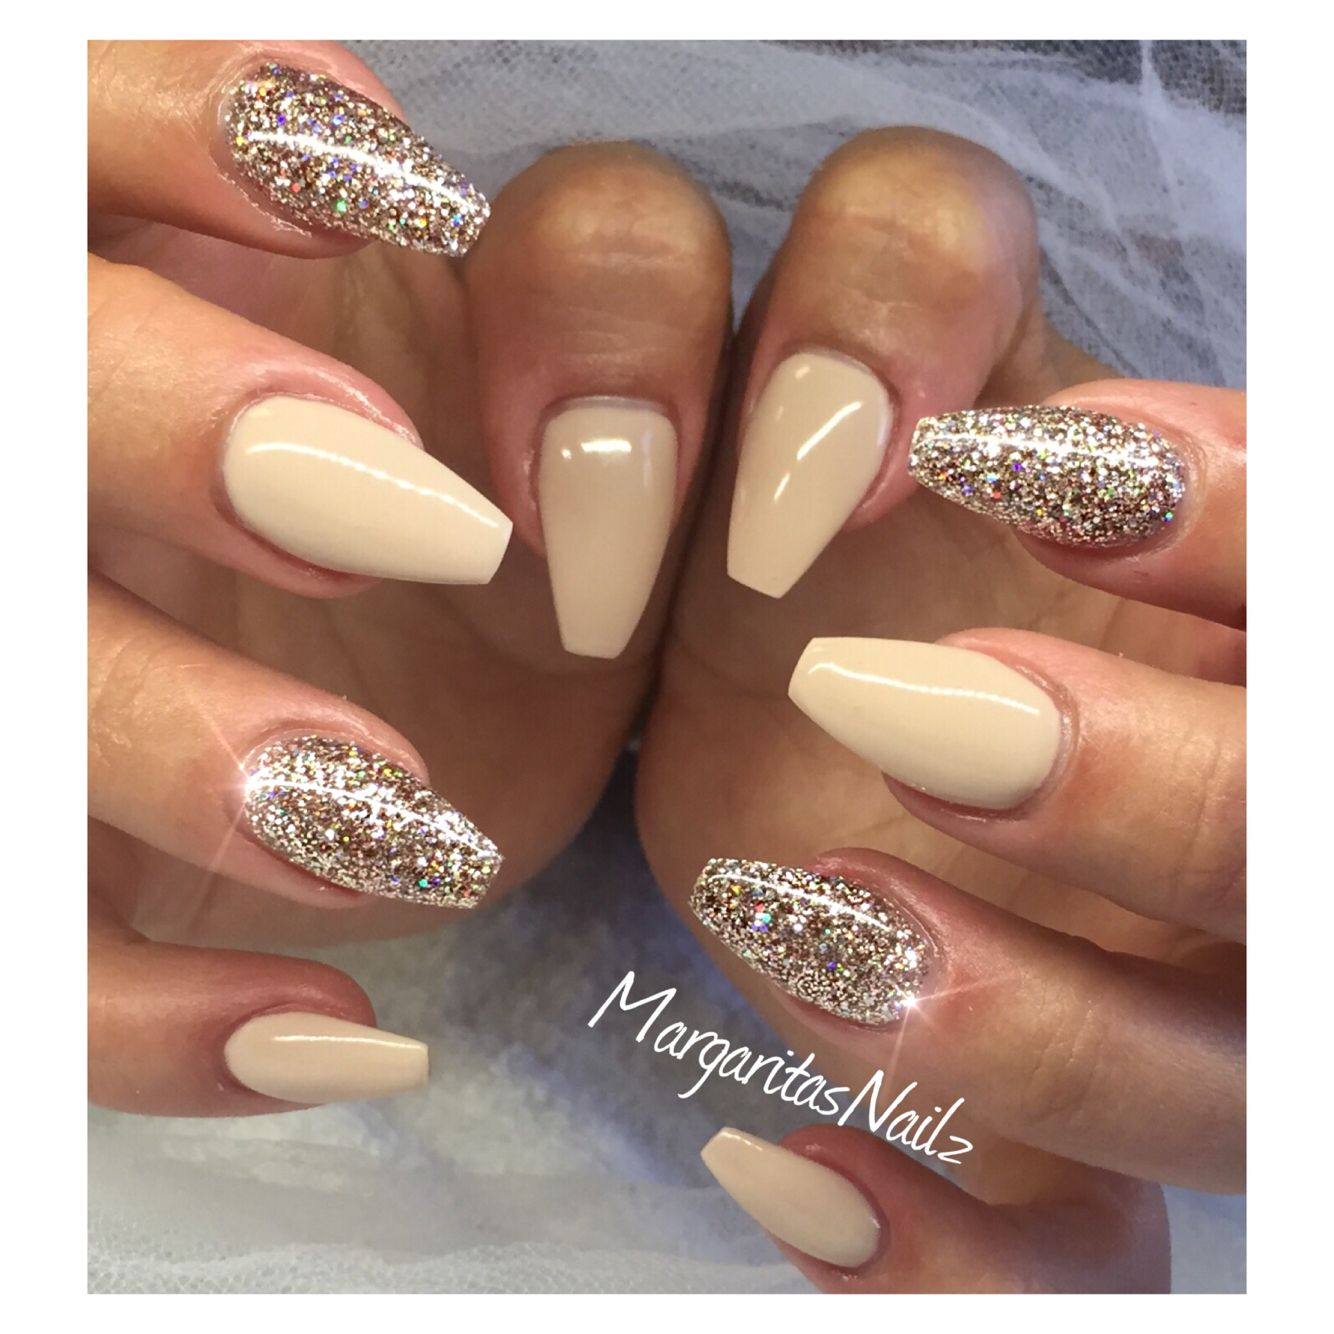 Pin by Bree Sims on nail | Pinterest | Champagne, Coffin nails and ...